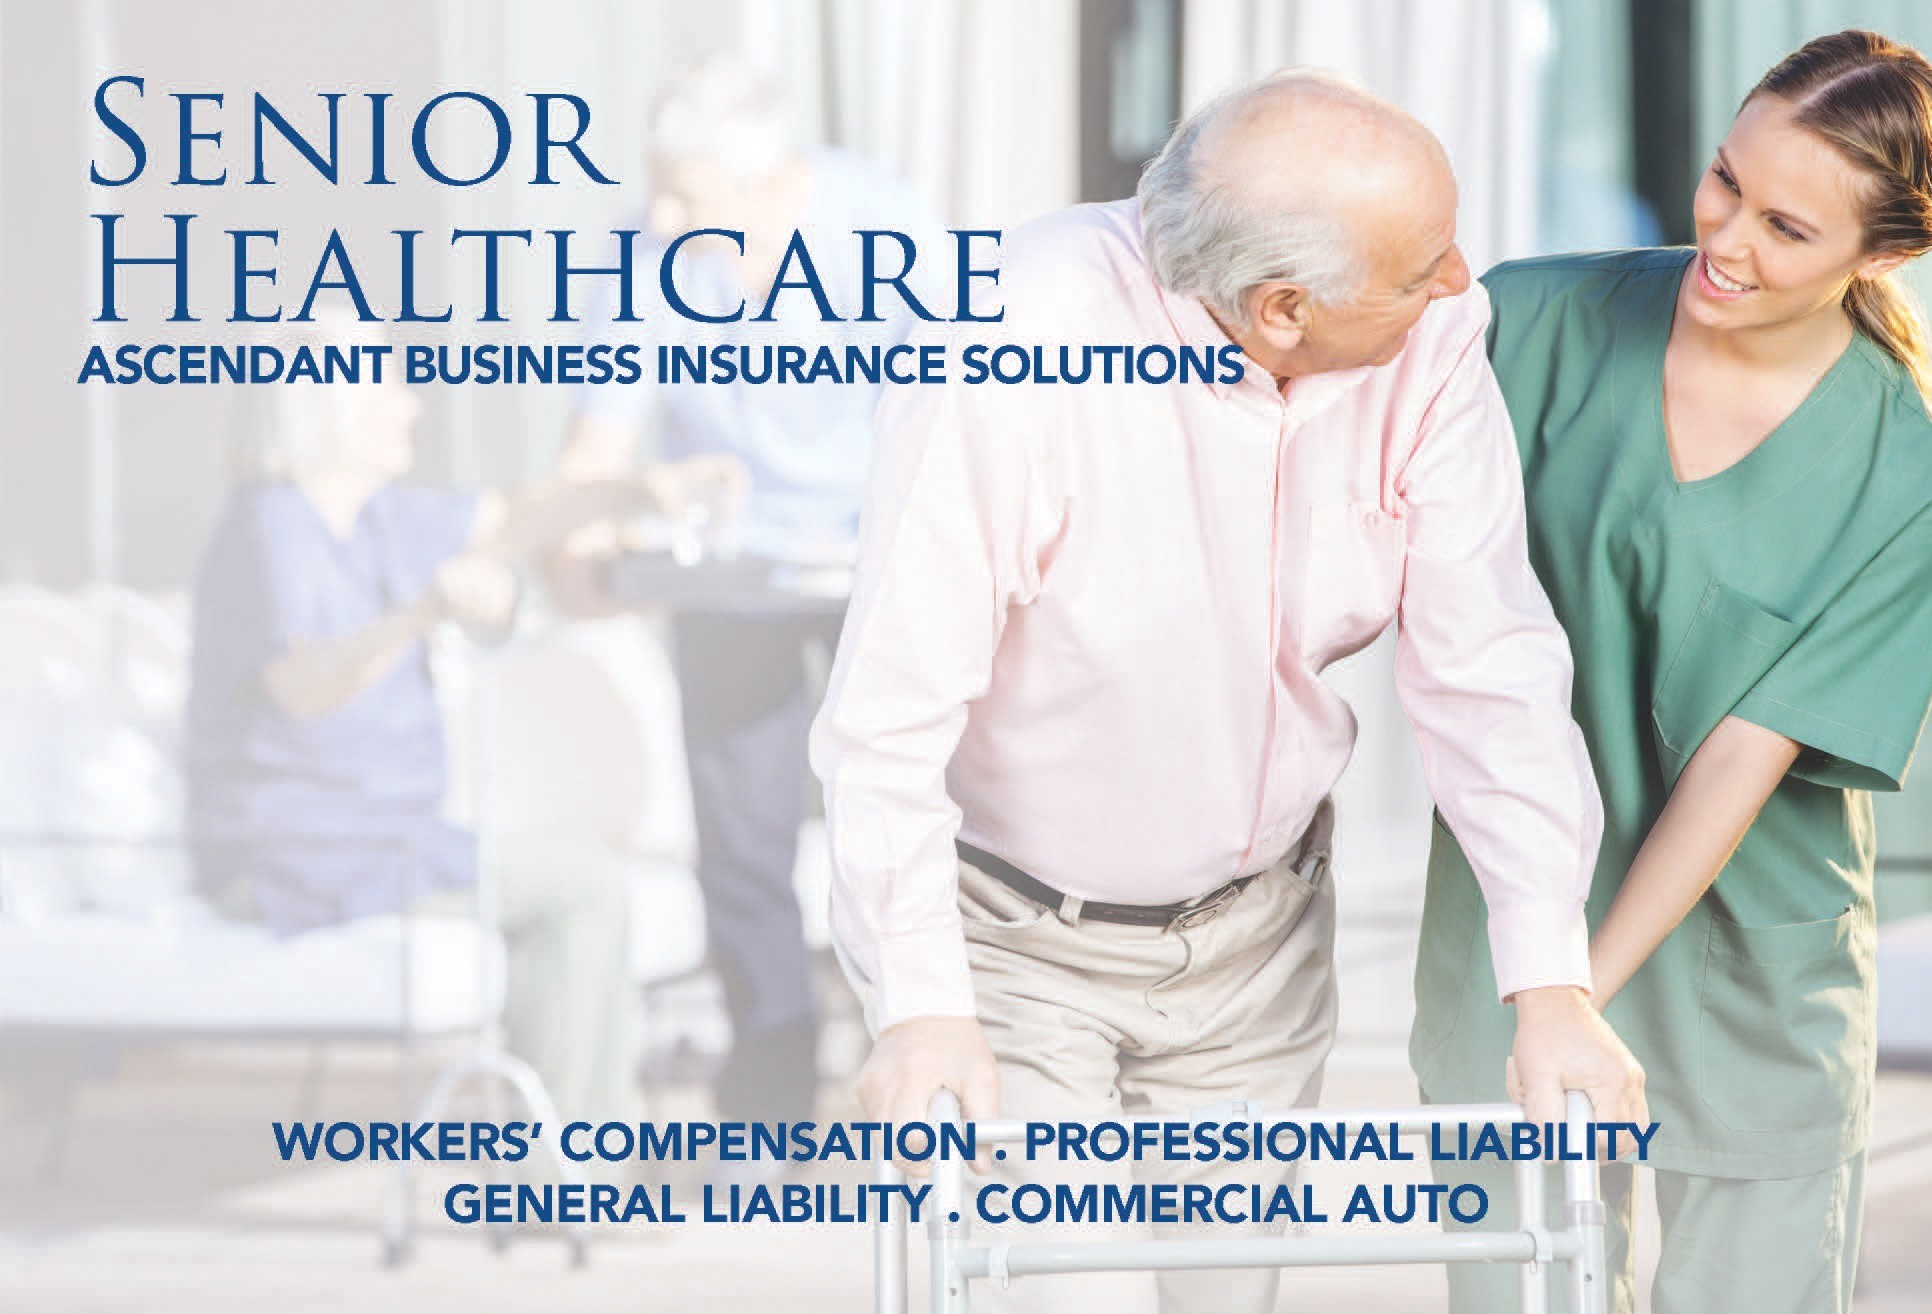 Ascendant | Senior Healthcare